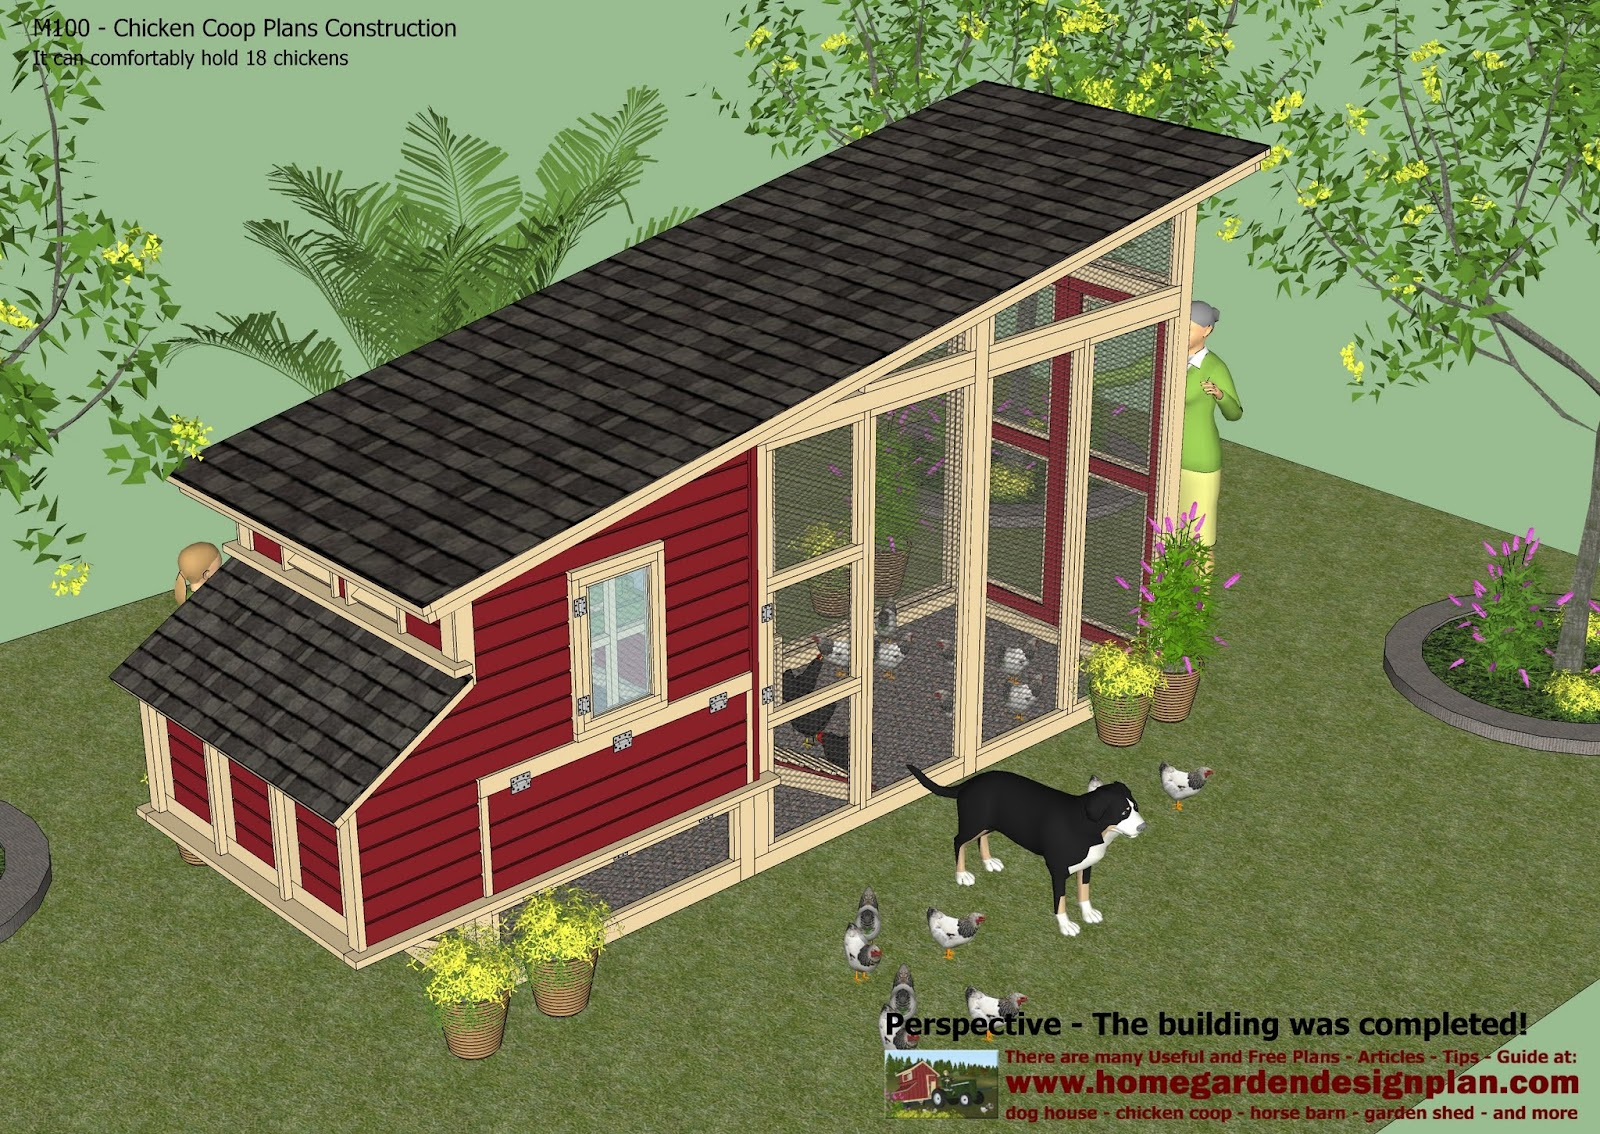 Home Garden Plans M100 Chicken Coop Plans Construction